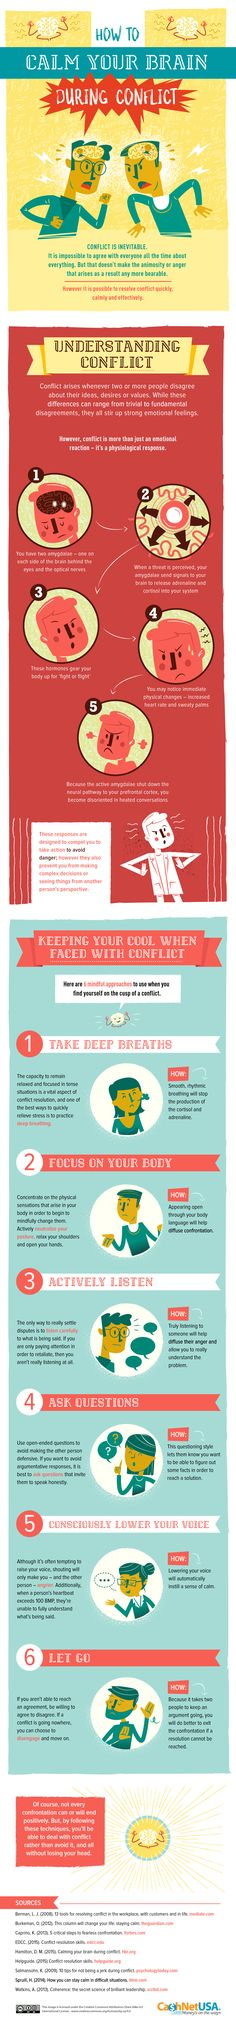 How to Calm Your Brain During Conflict (Infographic) - http://nifyhealth.com/how-to-calm-your-brain-during-conflict-infographic/